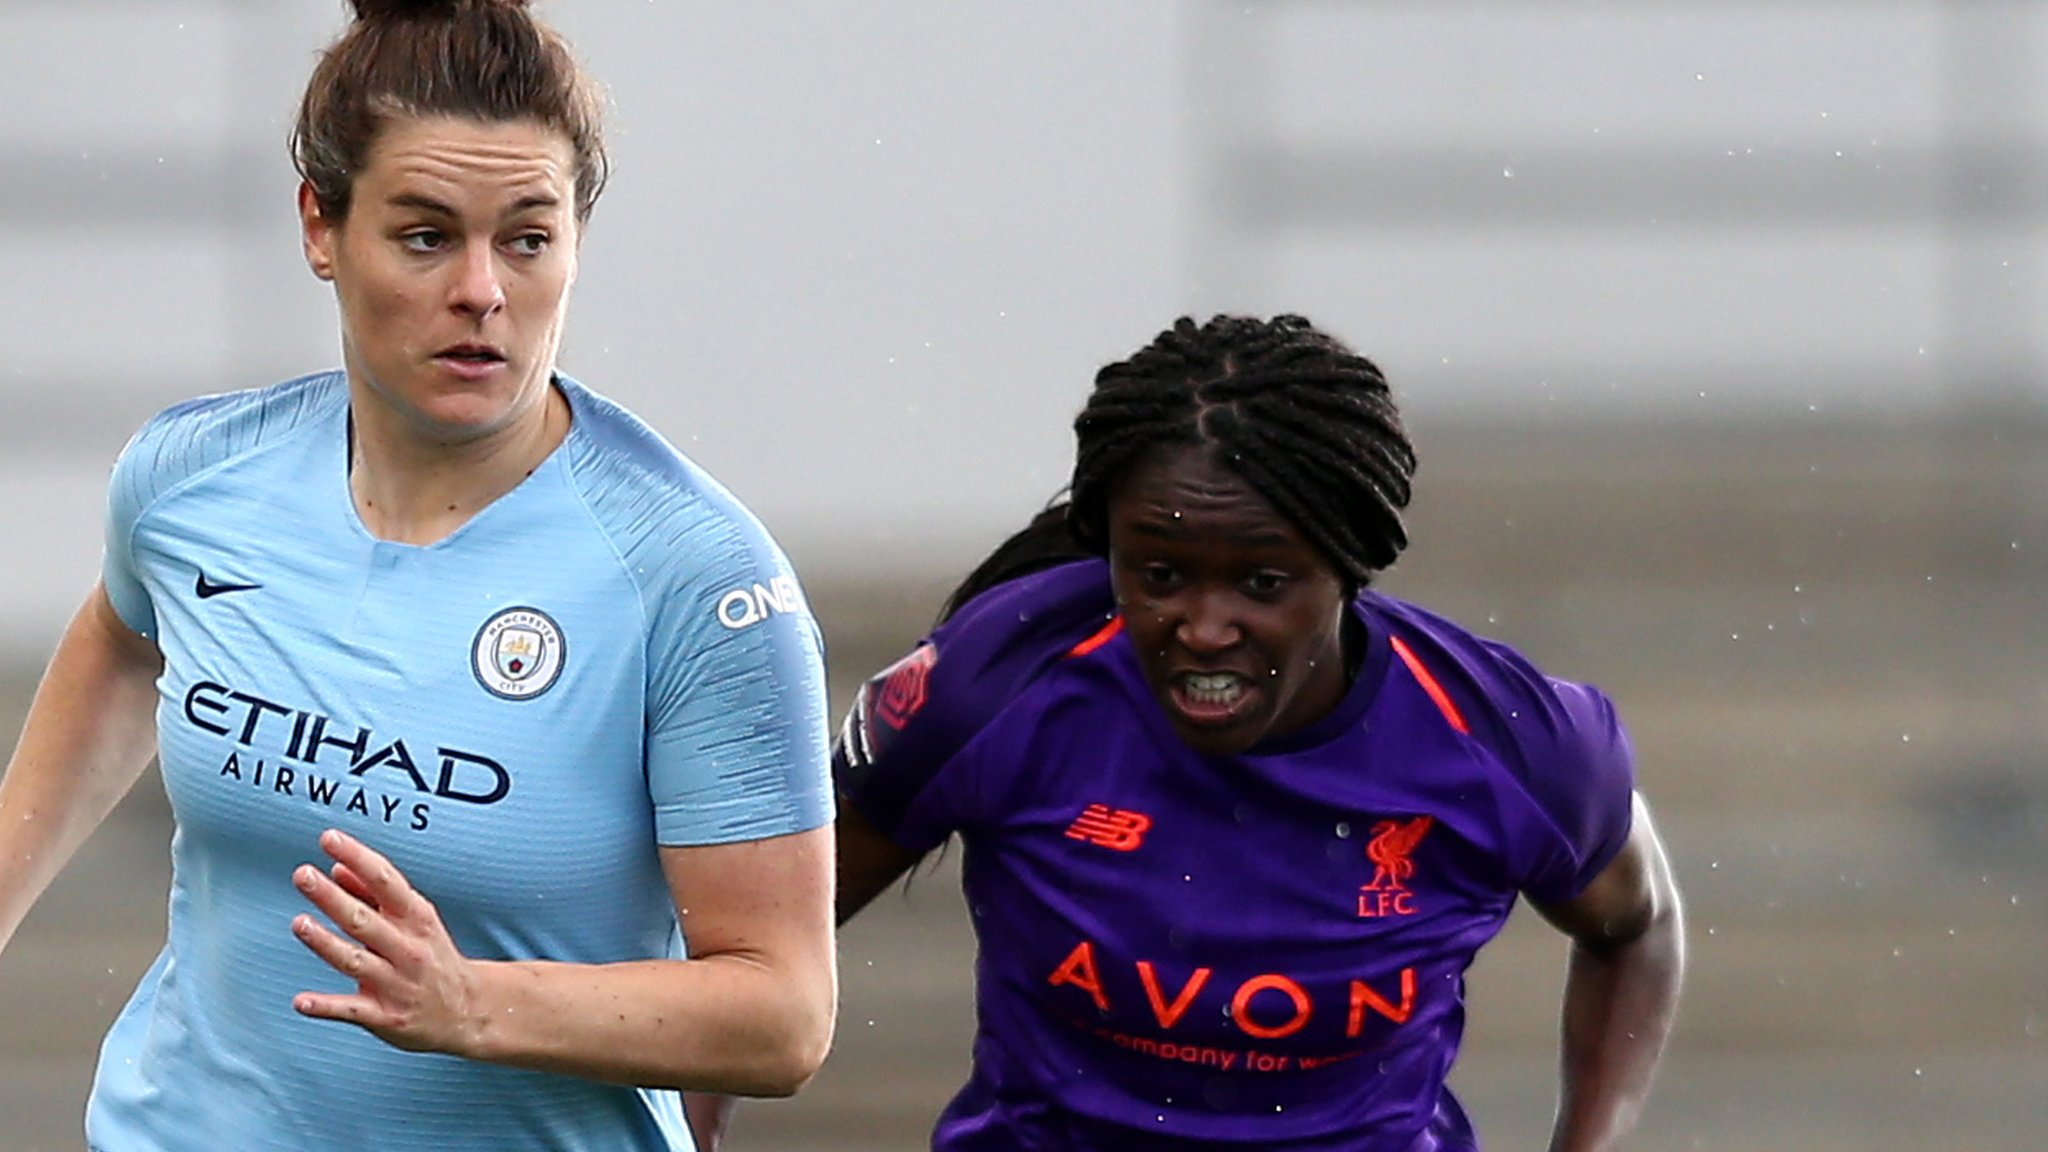 Women s FA Cup  Manchester City Women 3-0 Liverpool Women - Manchester City  Women remain on course for a treble after beating Liverpool to reach the  Women s ... 7a0708b3f